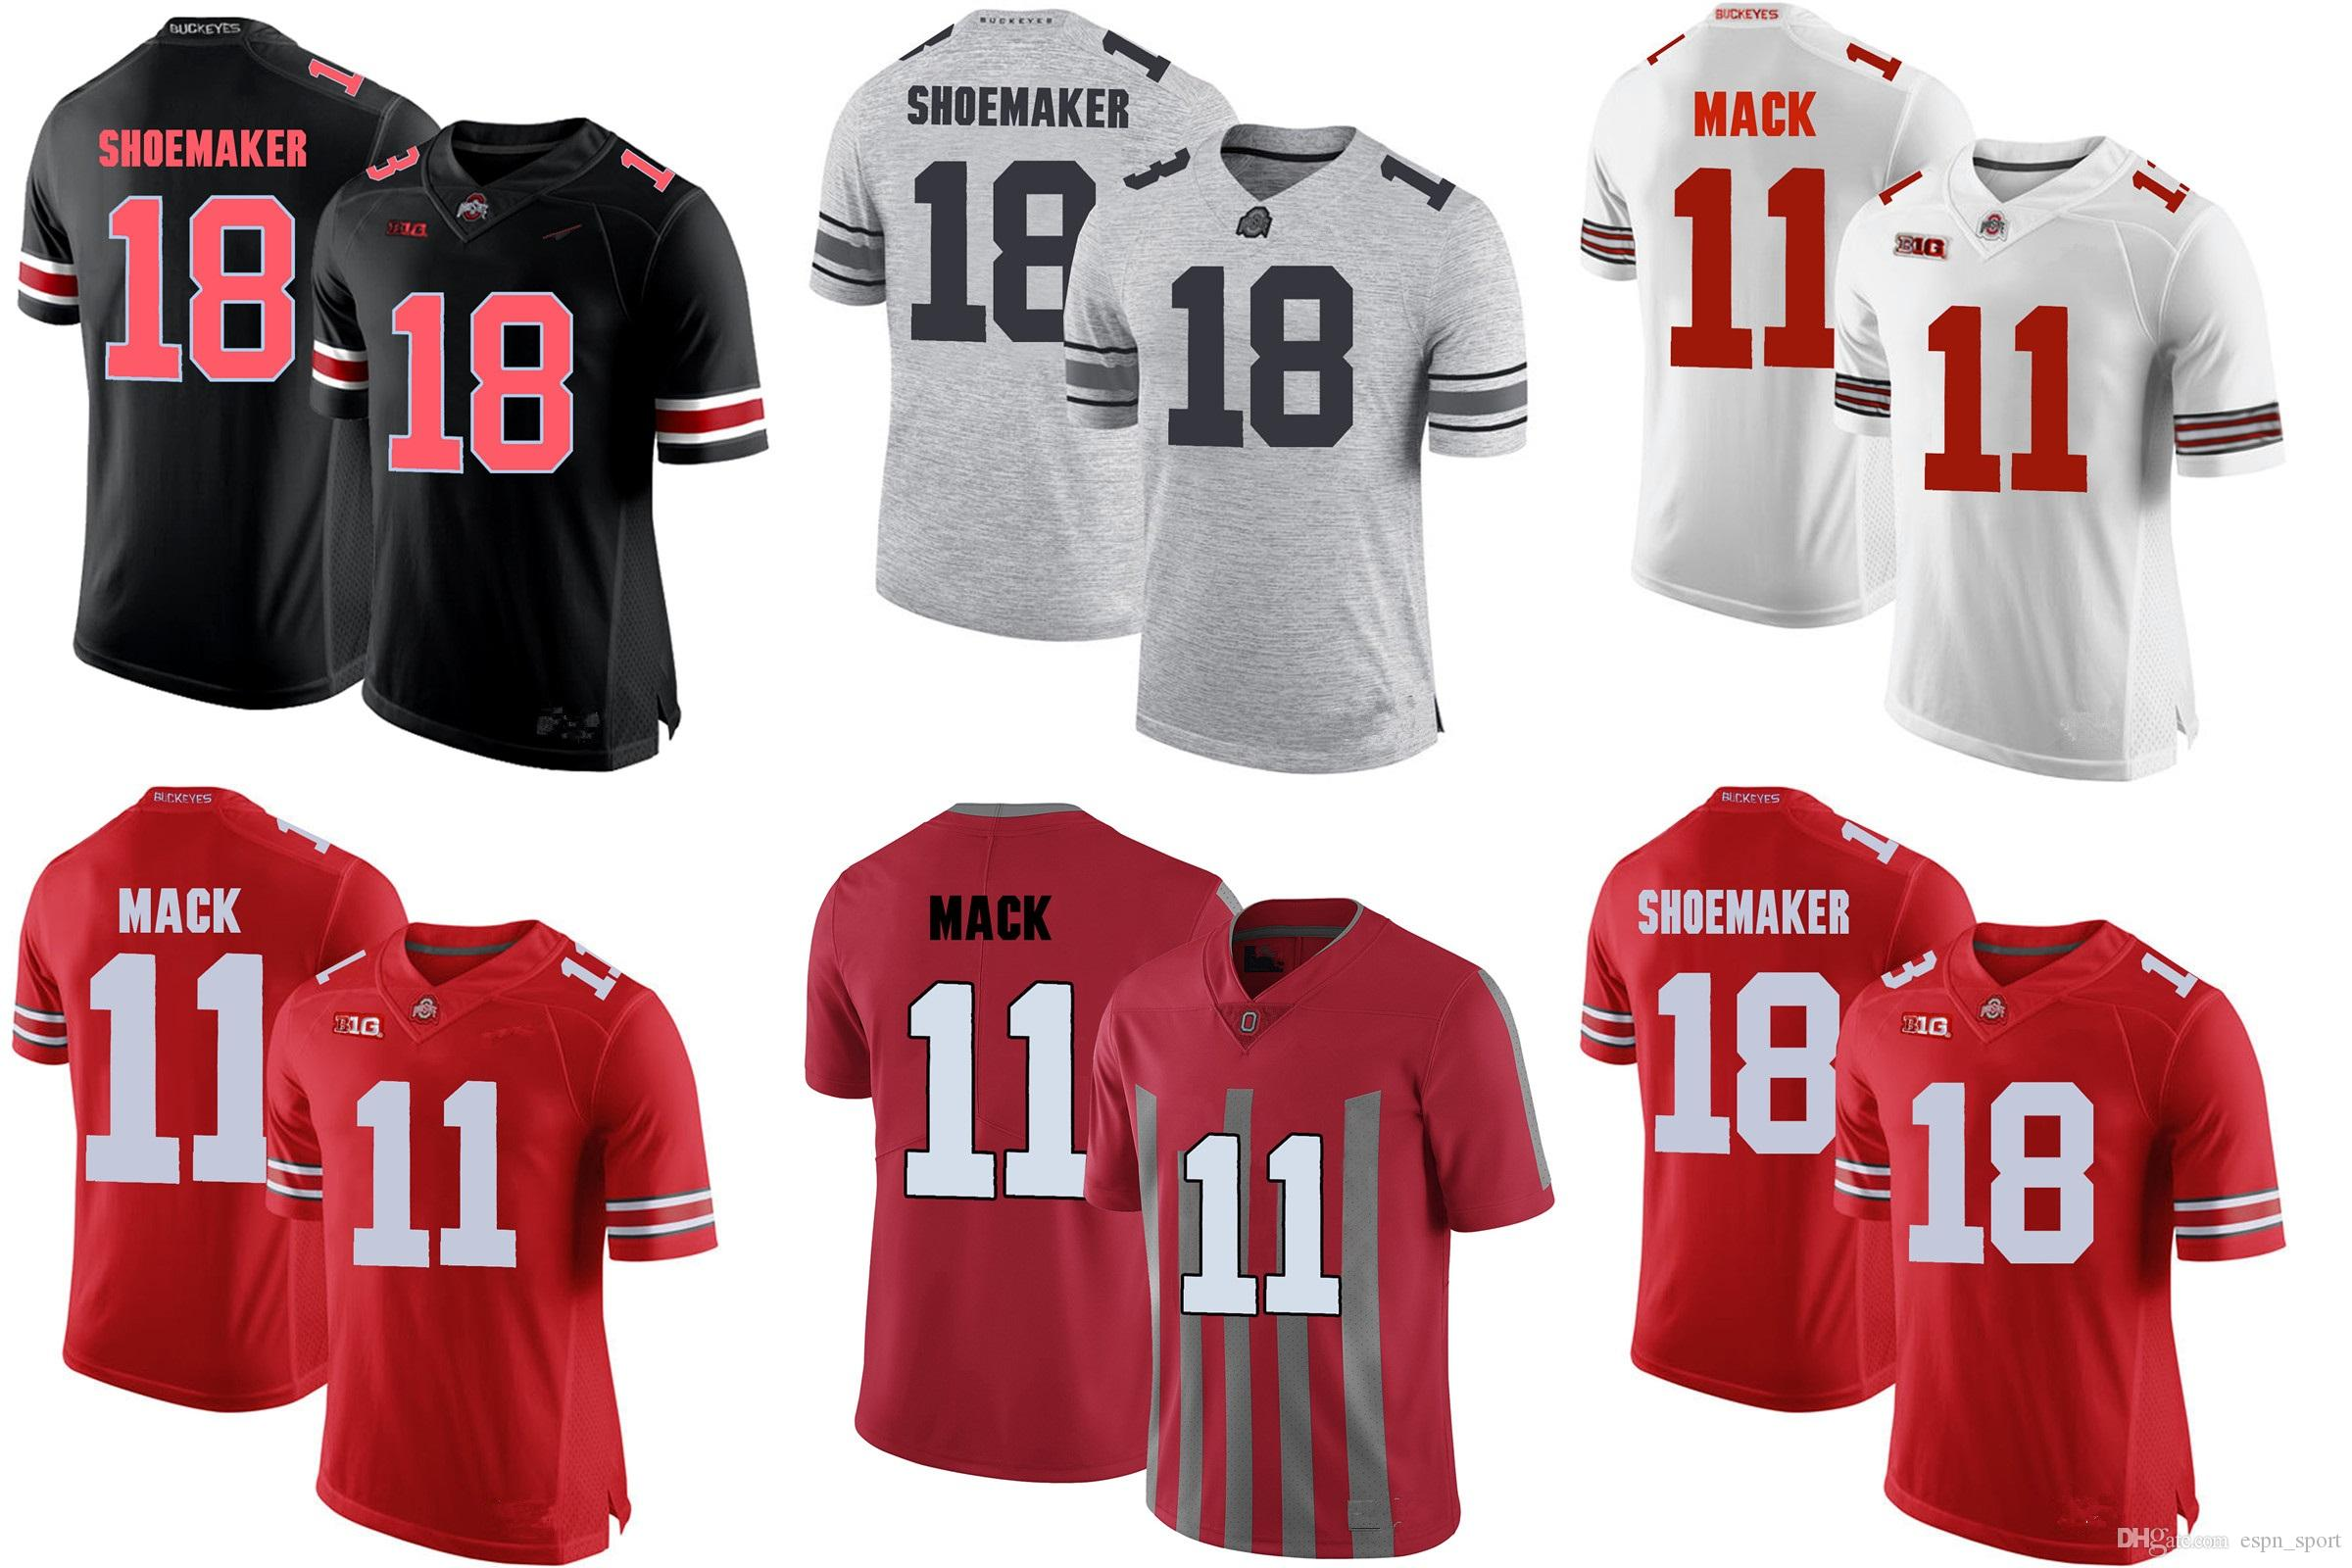 Factory Outlet- NCAA Ohio State SHOEMAKER 18 Ohio State MACK 11 College  Football Jerseys Stitched Jersey Sports Jerseys SHOEMAKER Jersey Cheap  Sports ... f9c5416d1